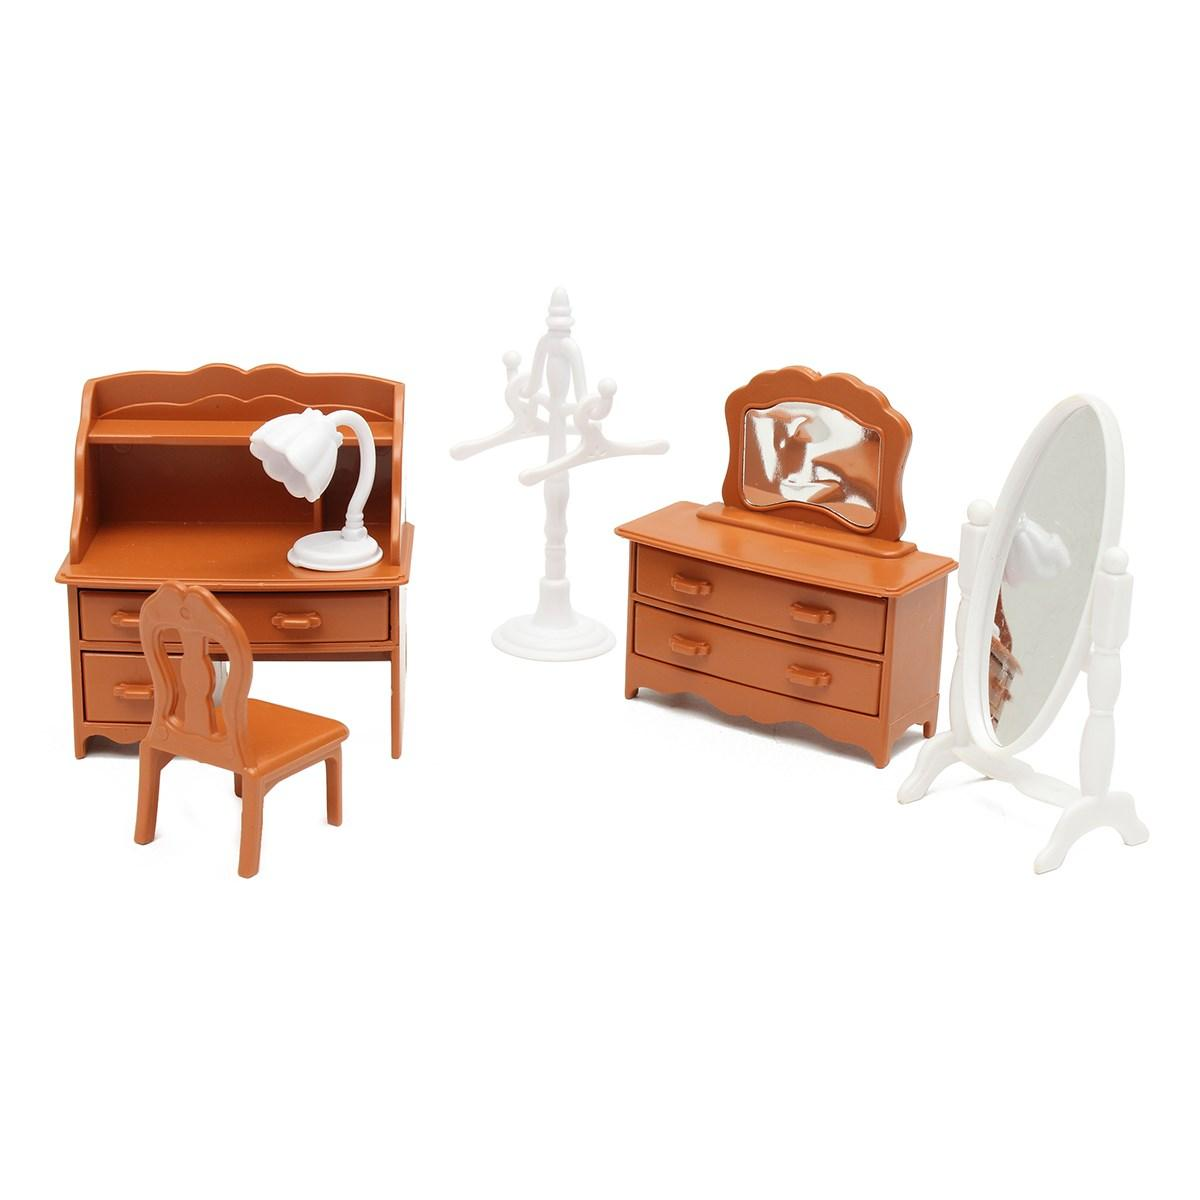 Miniature Living Room Dressing Table Furniture Sets For Mini Children Dollhouse Home Decor Kids Toy Doll House Toys Gift Victorian Dollhouses